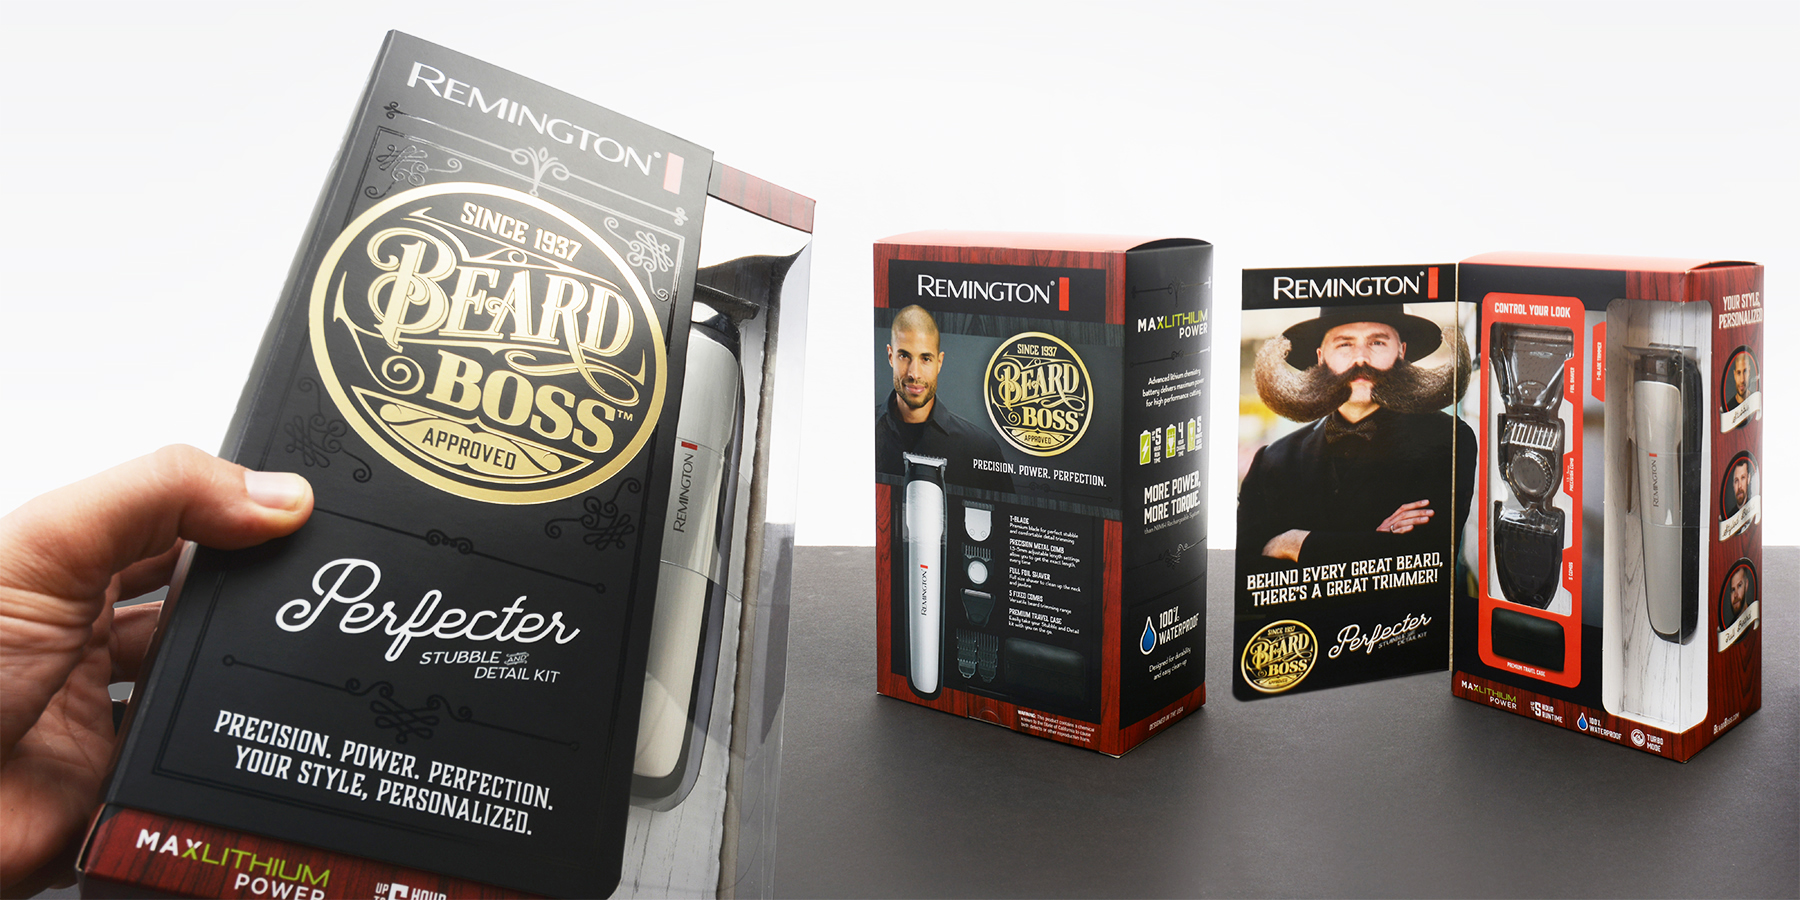 Remington – Beard Boss Packaging